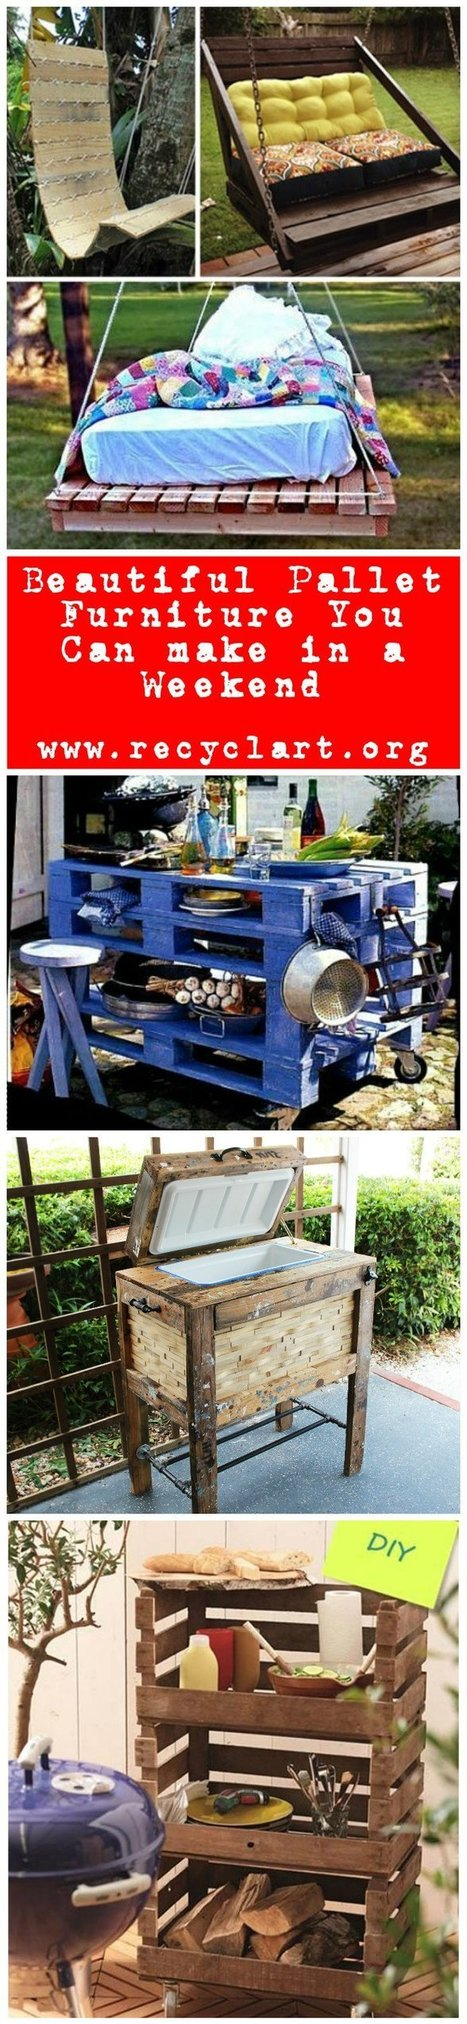 Beautiful Pallet Furniture You Can Materialize in a Weekend   1001 Recycling Ideas !   Scoop.it